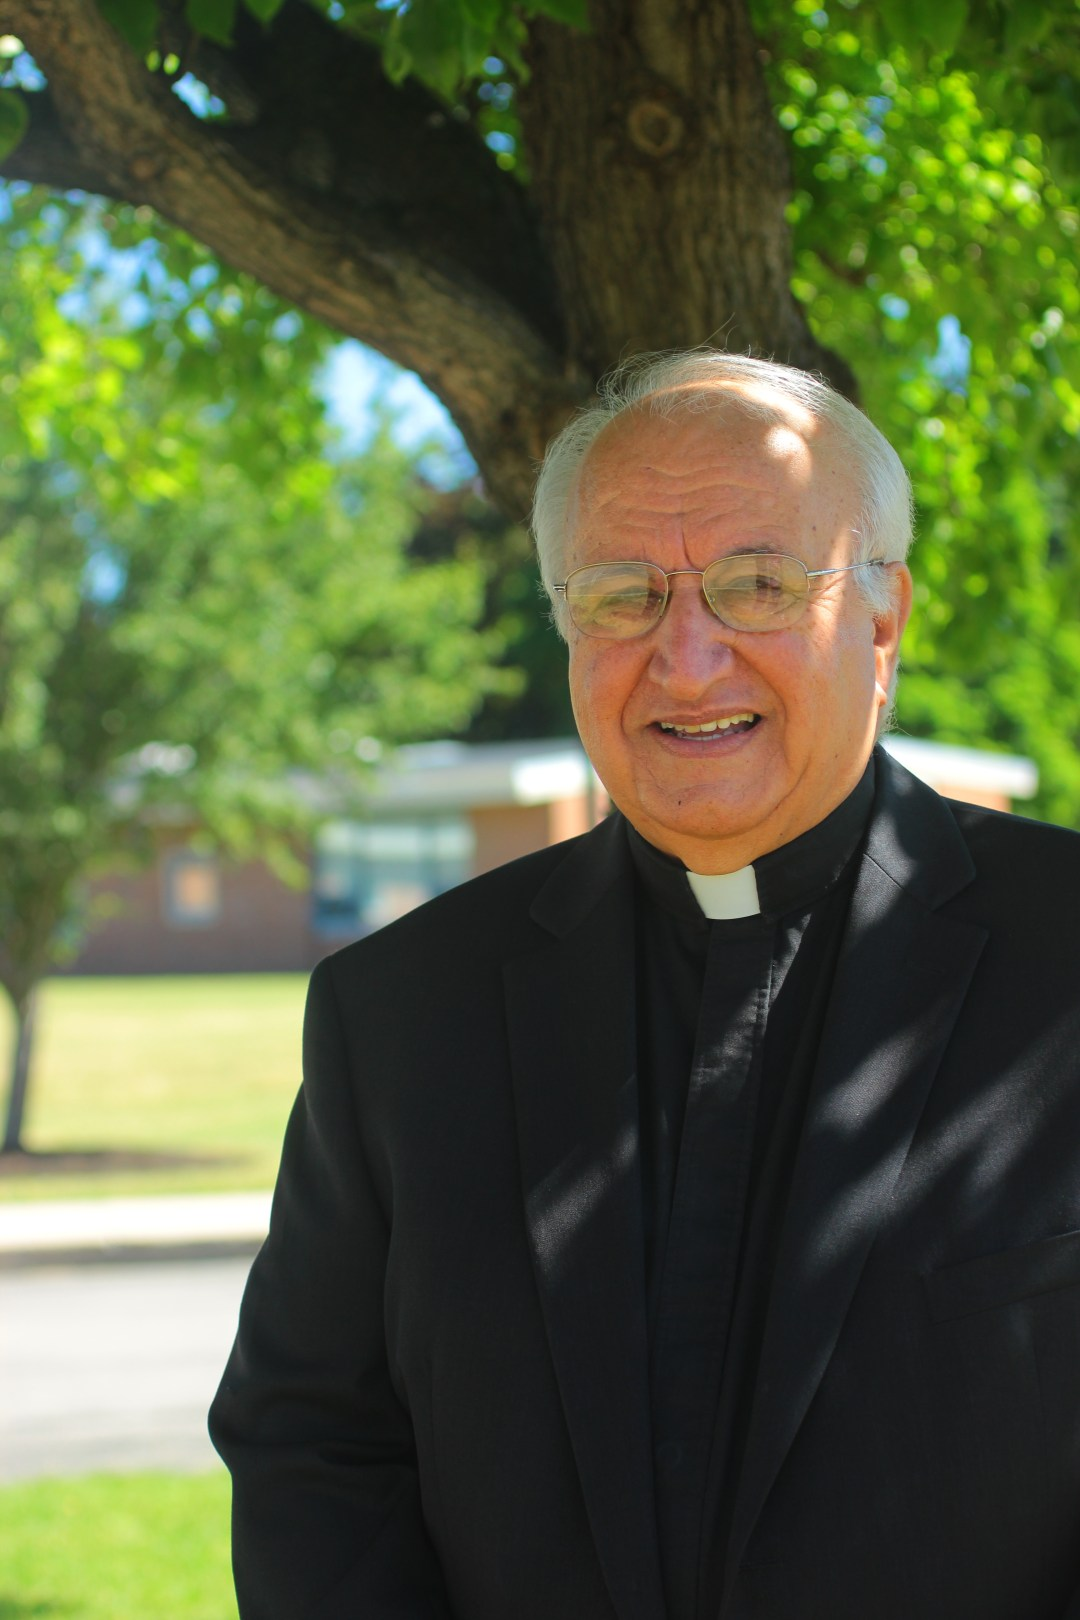 Rev. Michael Farano